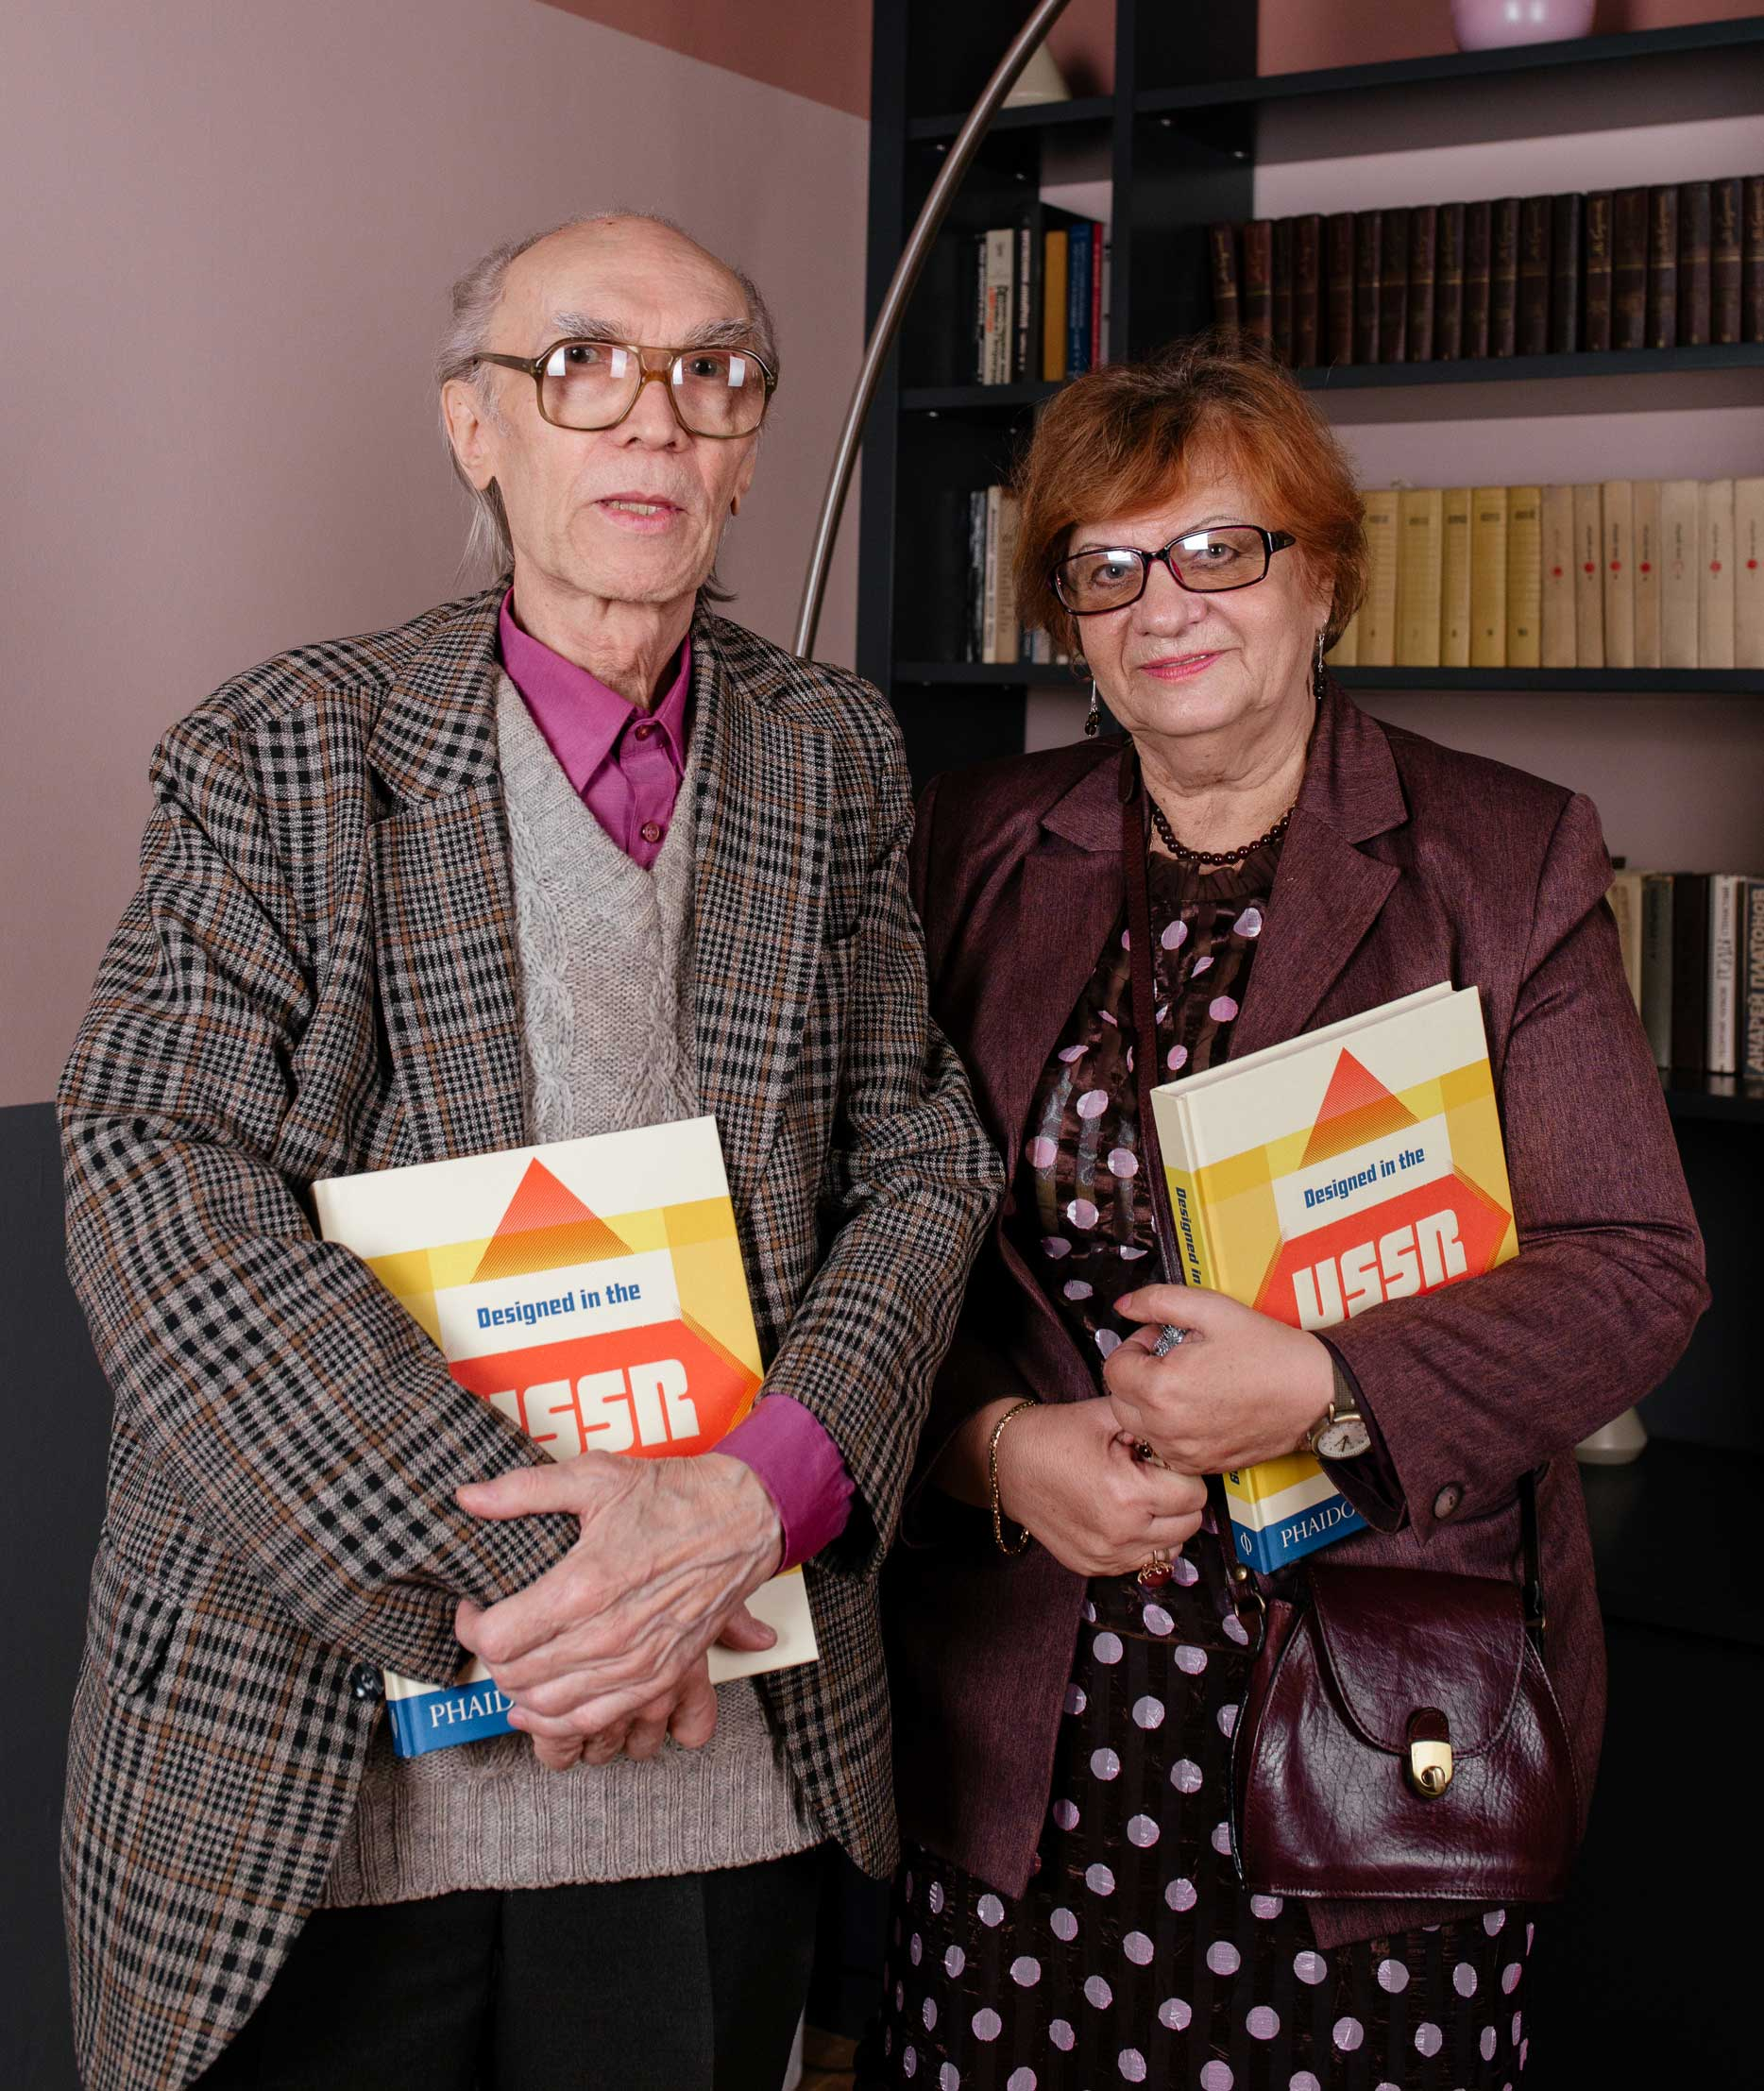 Two of the designers featured in Designed in the USSR: 1950-1989 holding a copy of the book photographed at the Tretiakov Gallery in Moscow last month Left: Alexander Grashin right unknown